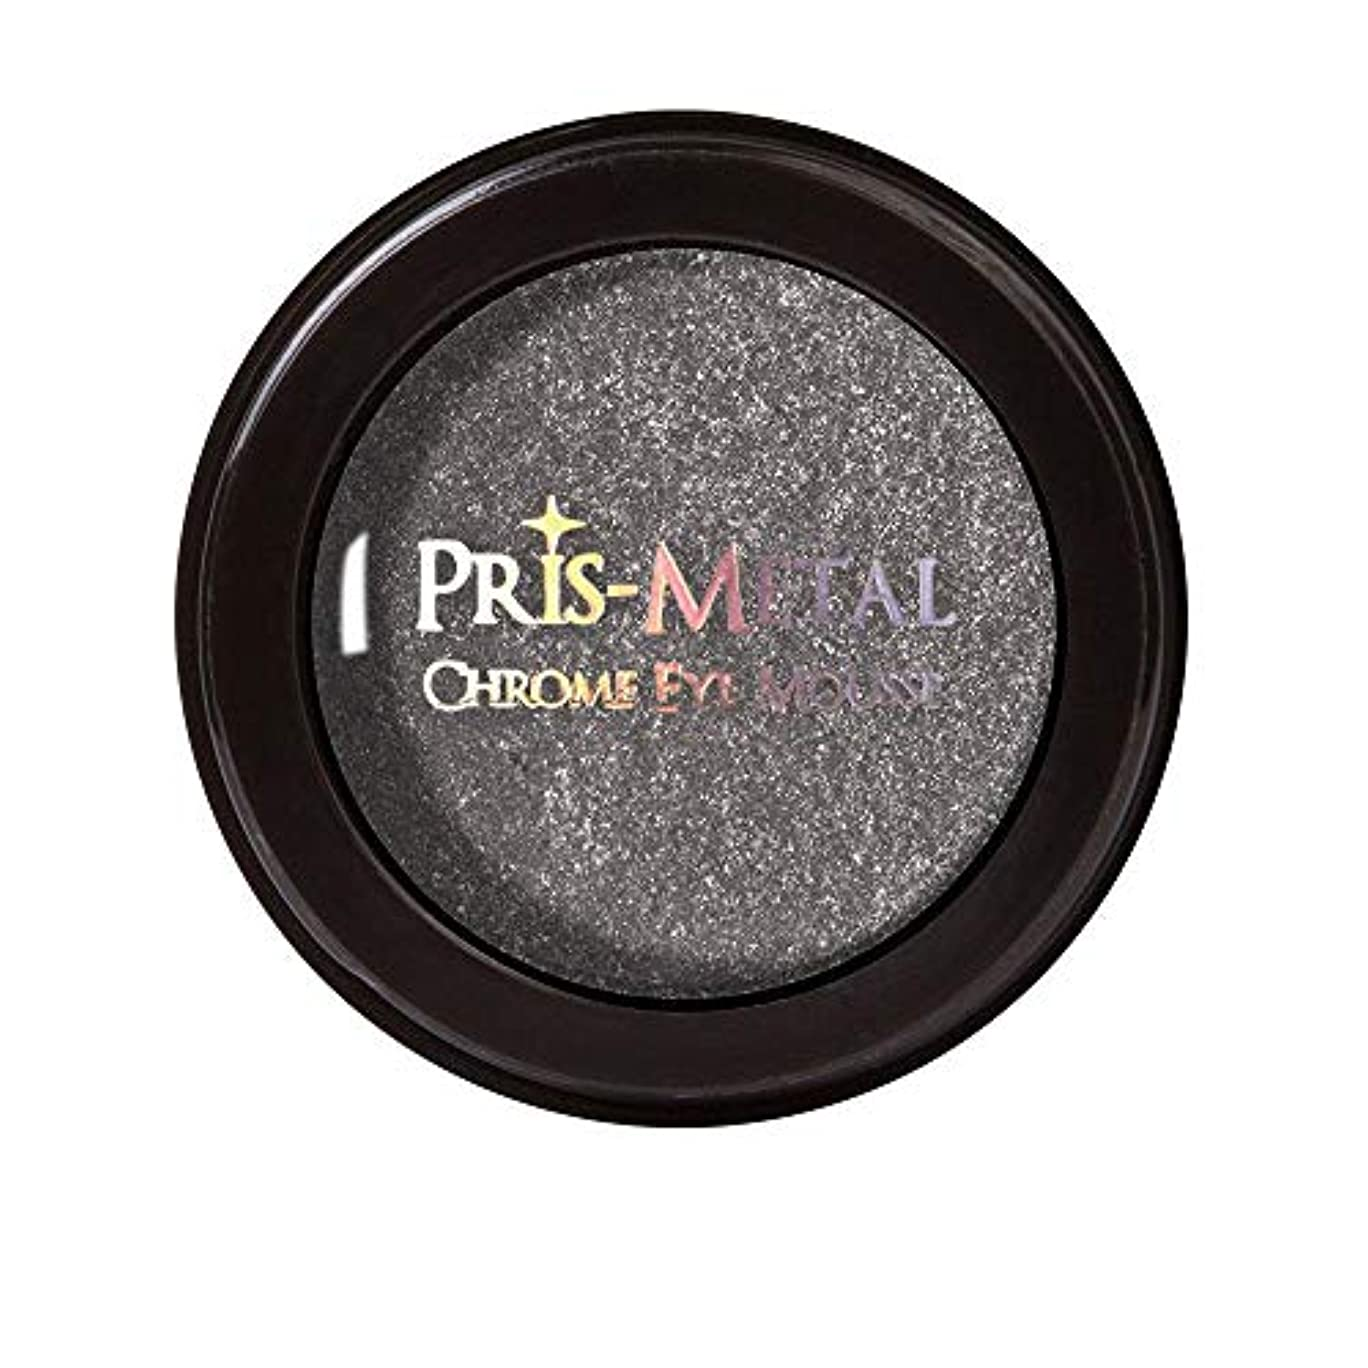 告白する精緻化気体のJ. CAT BEAUTY Pris-Metal Chrome Eye Mousse - Gray Later (並行輸入品)